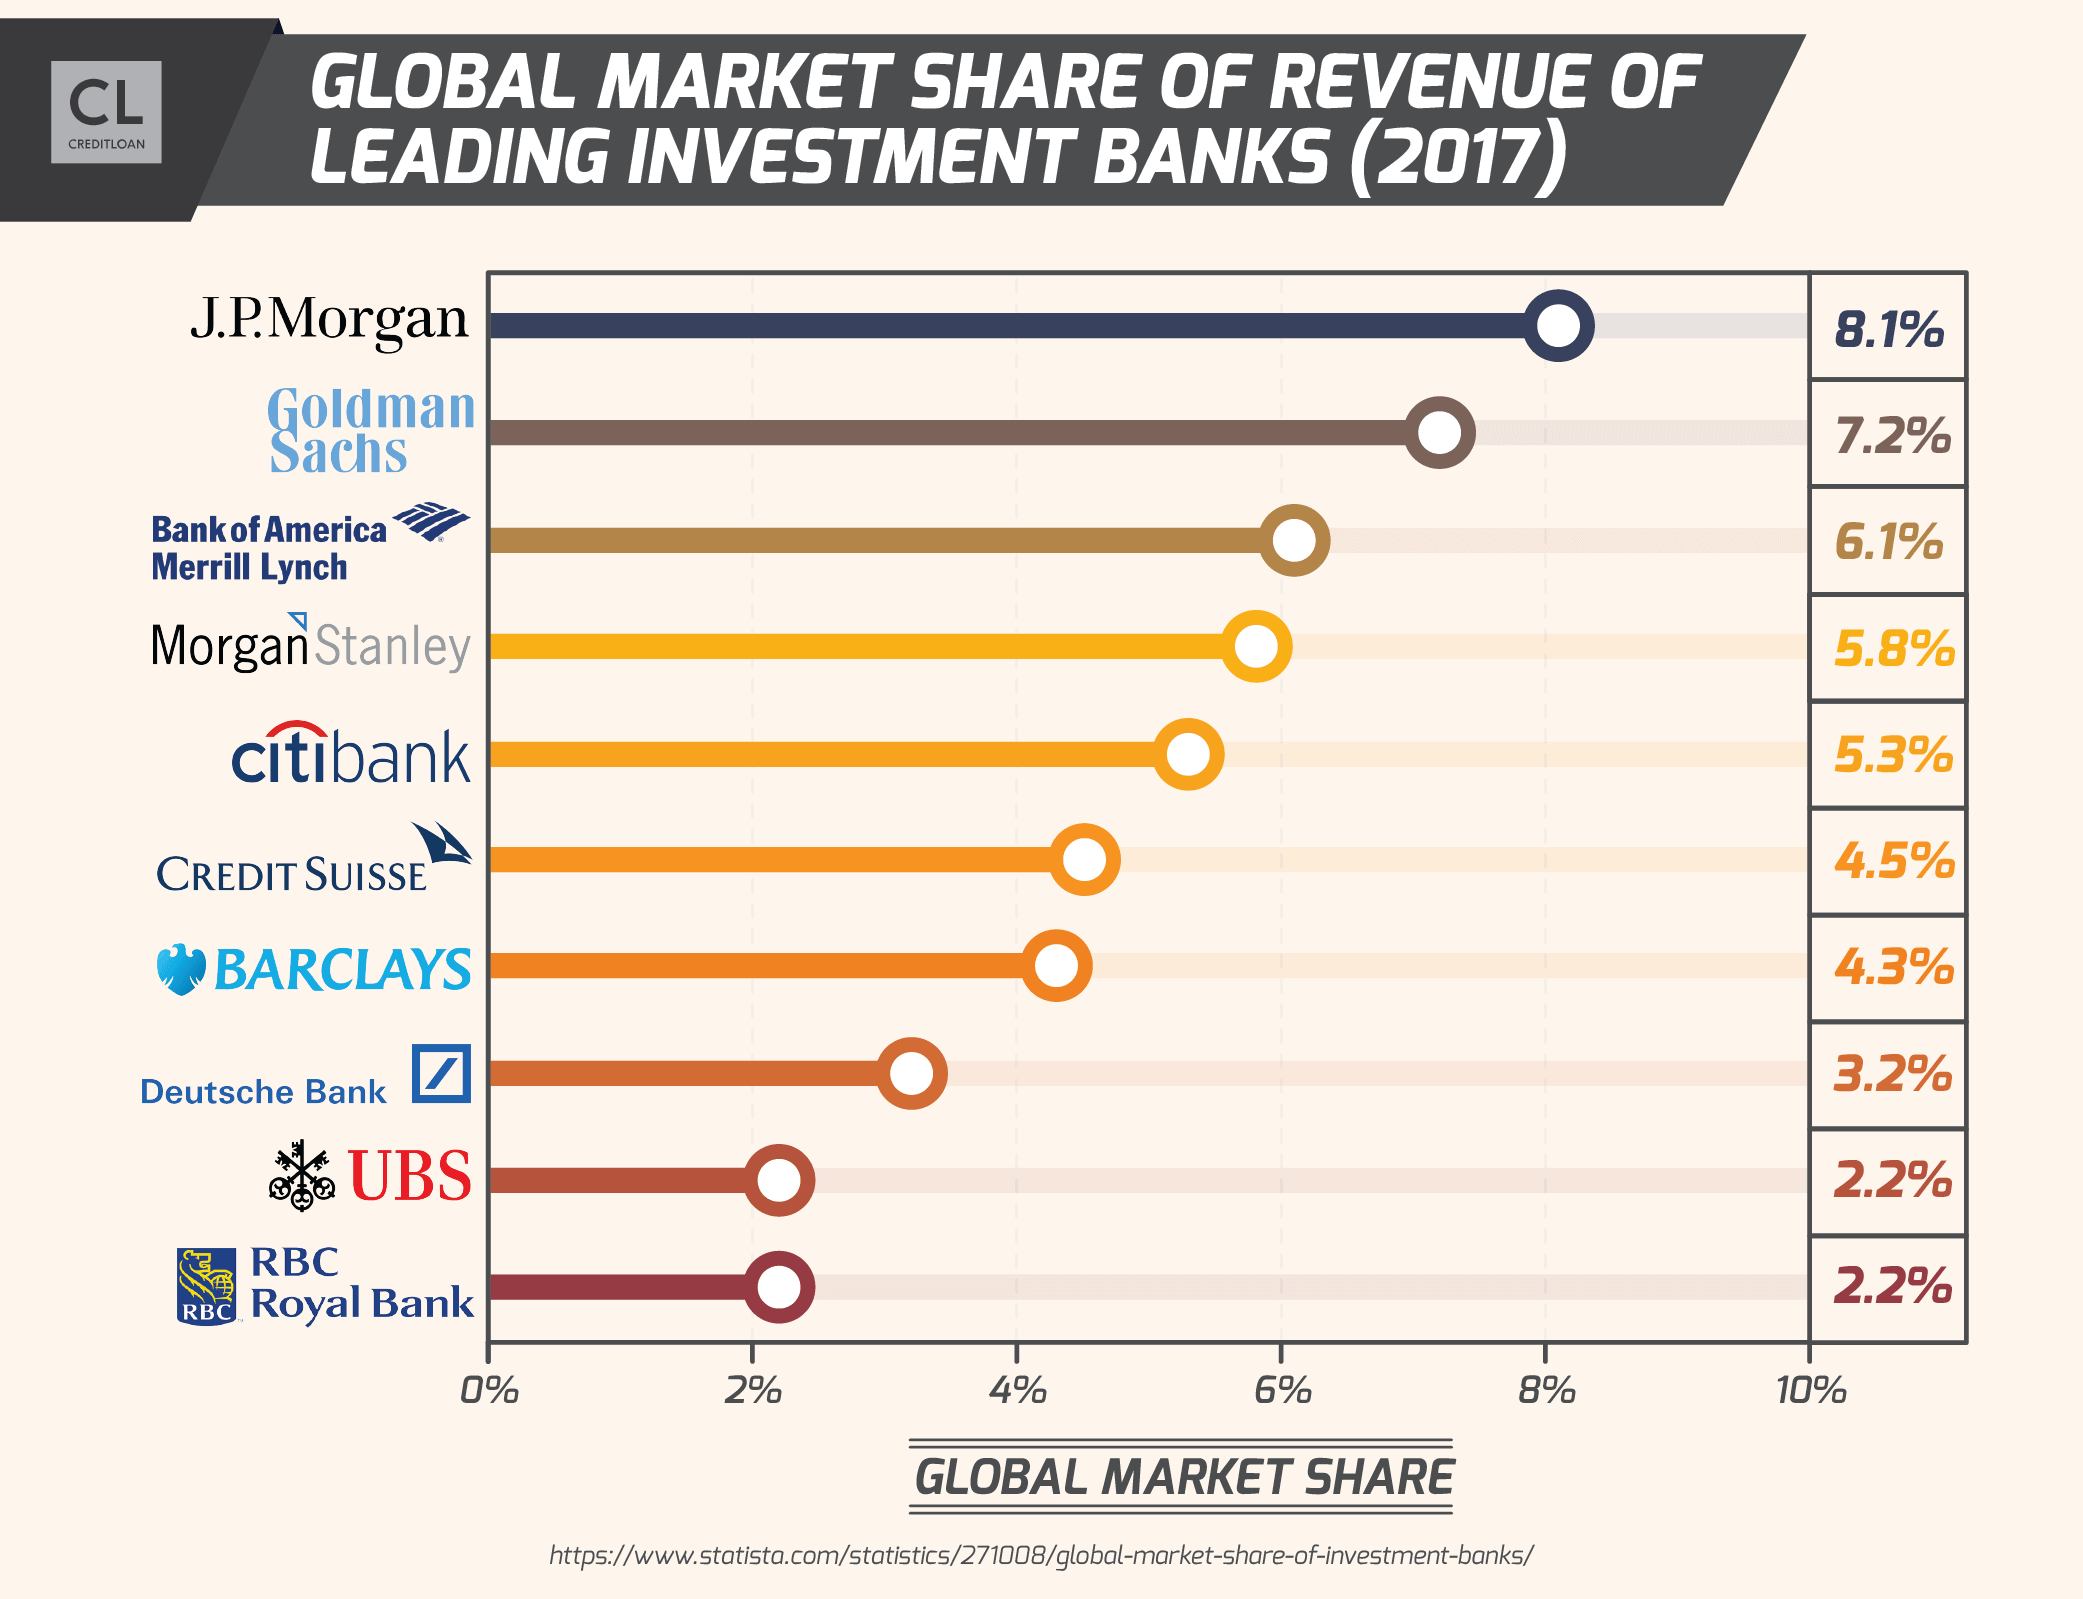 Global Market Share of Revenue of Leading Investment Banks